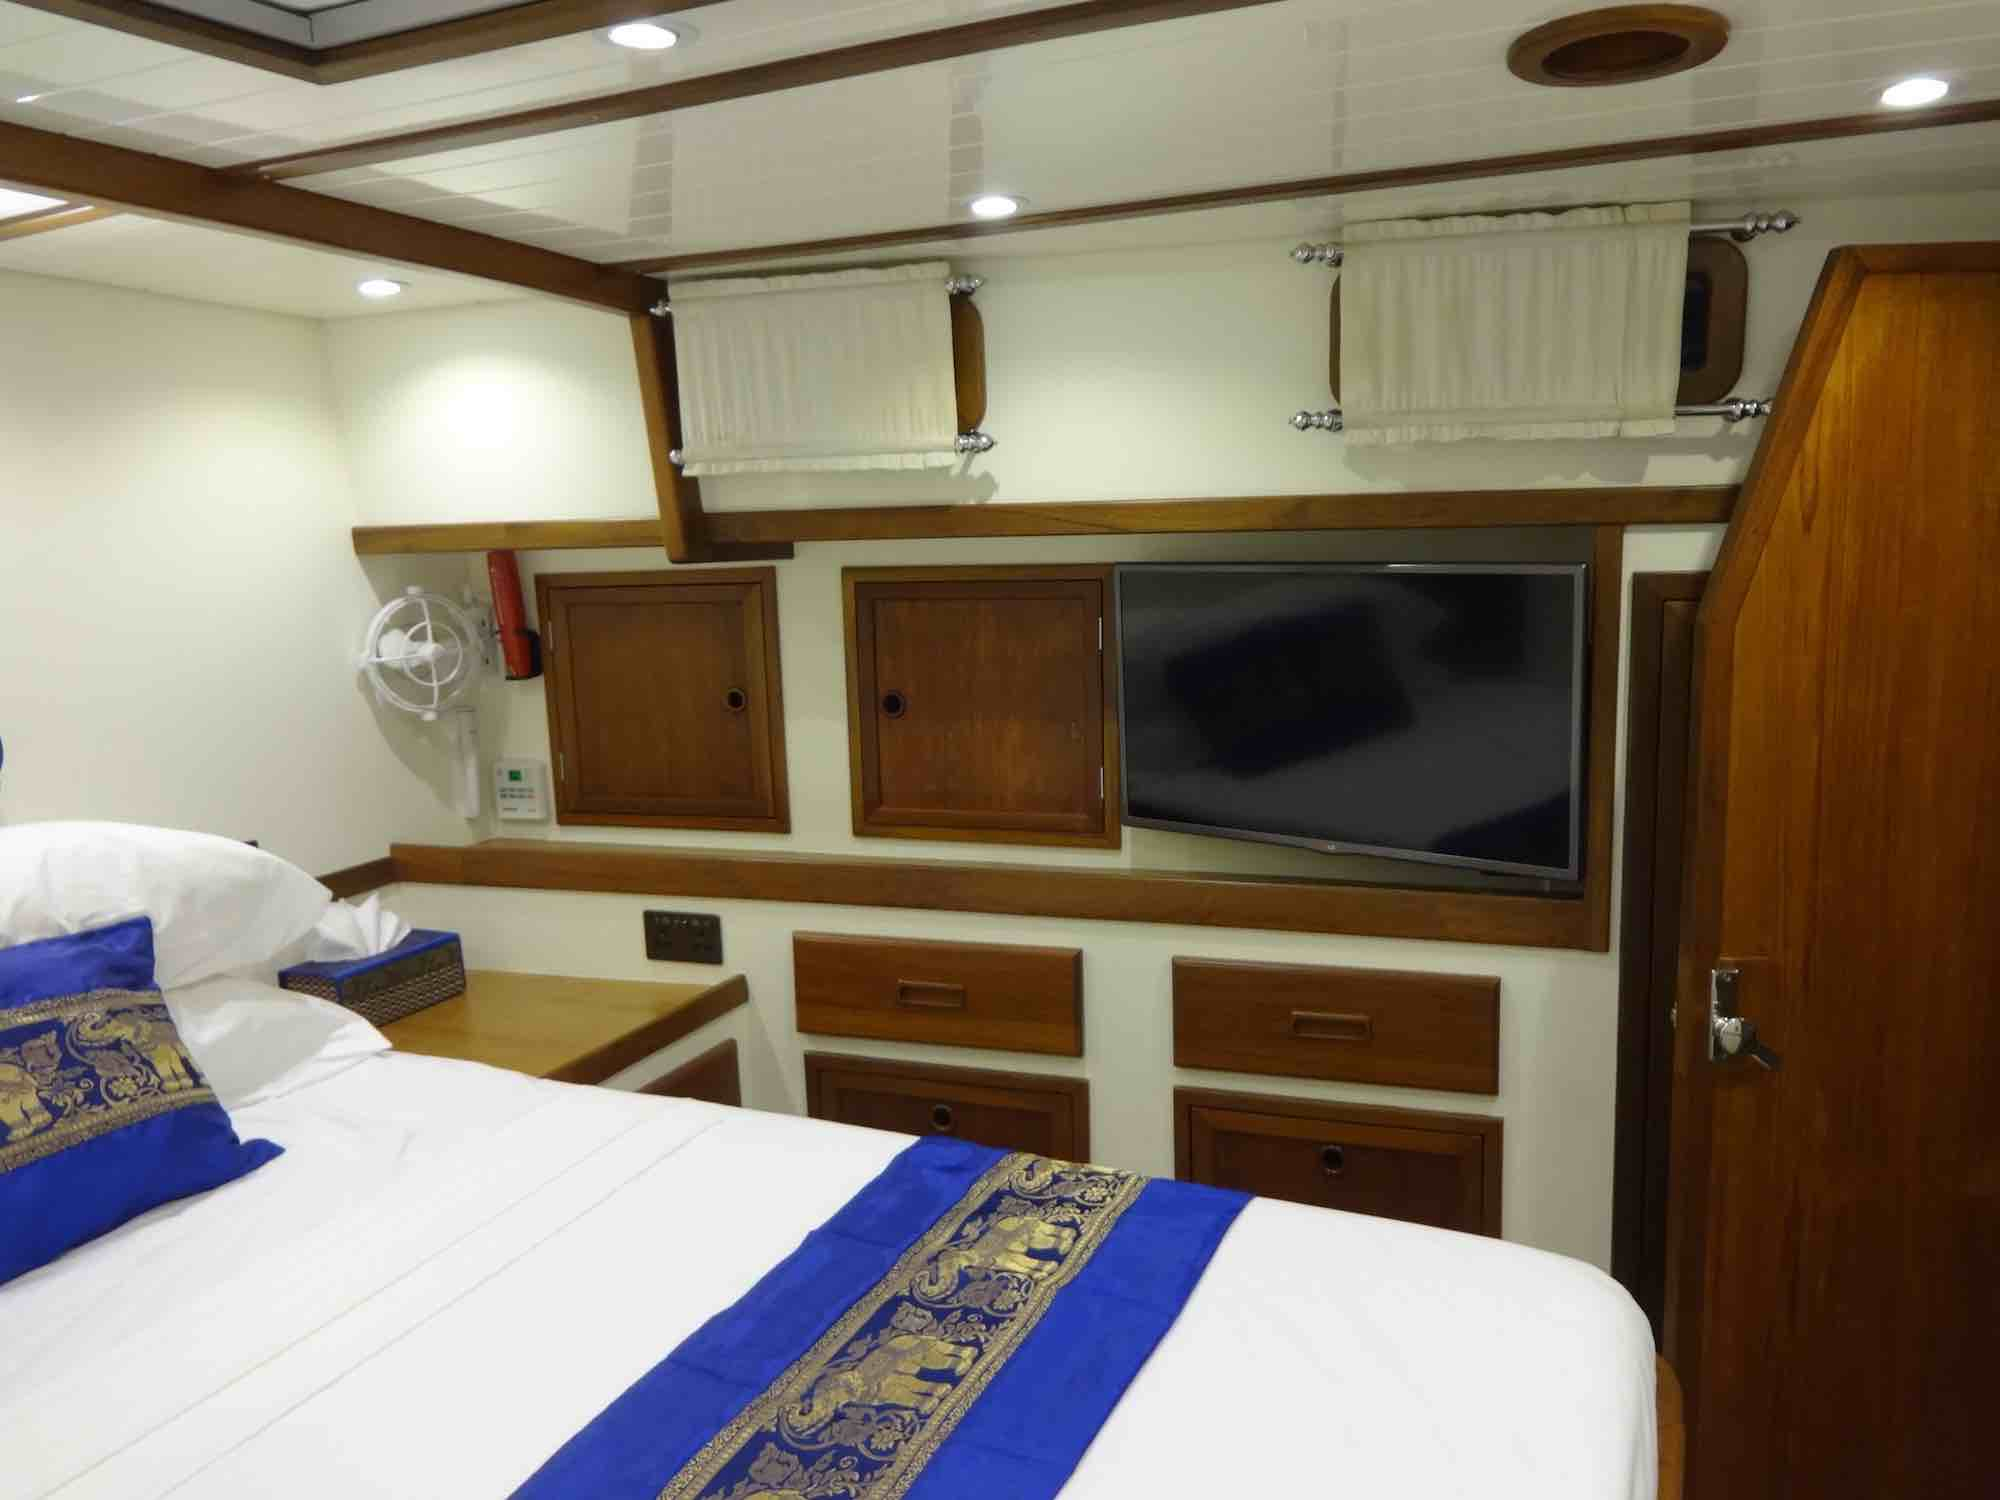 Dallinghoo_guest cabin blue throw pillows and TV yacht trip in Mergui_XS.jpeg